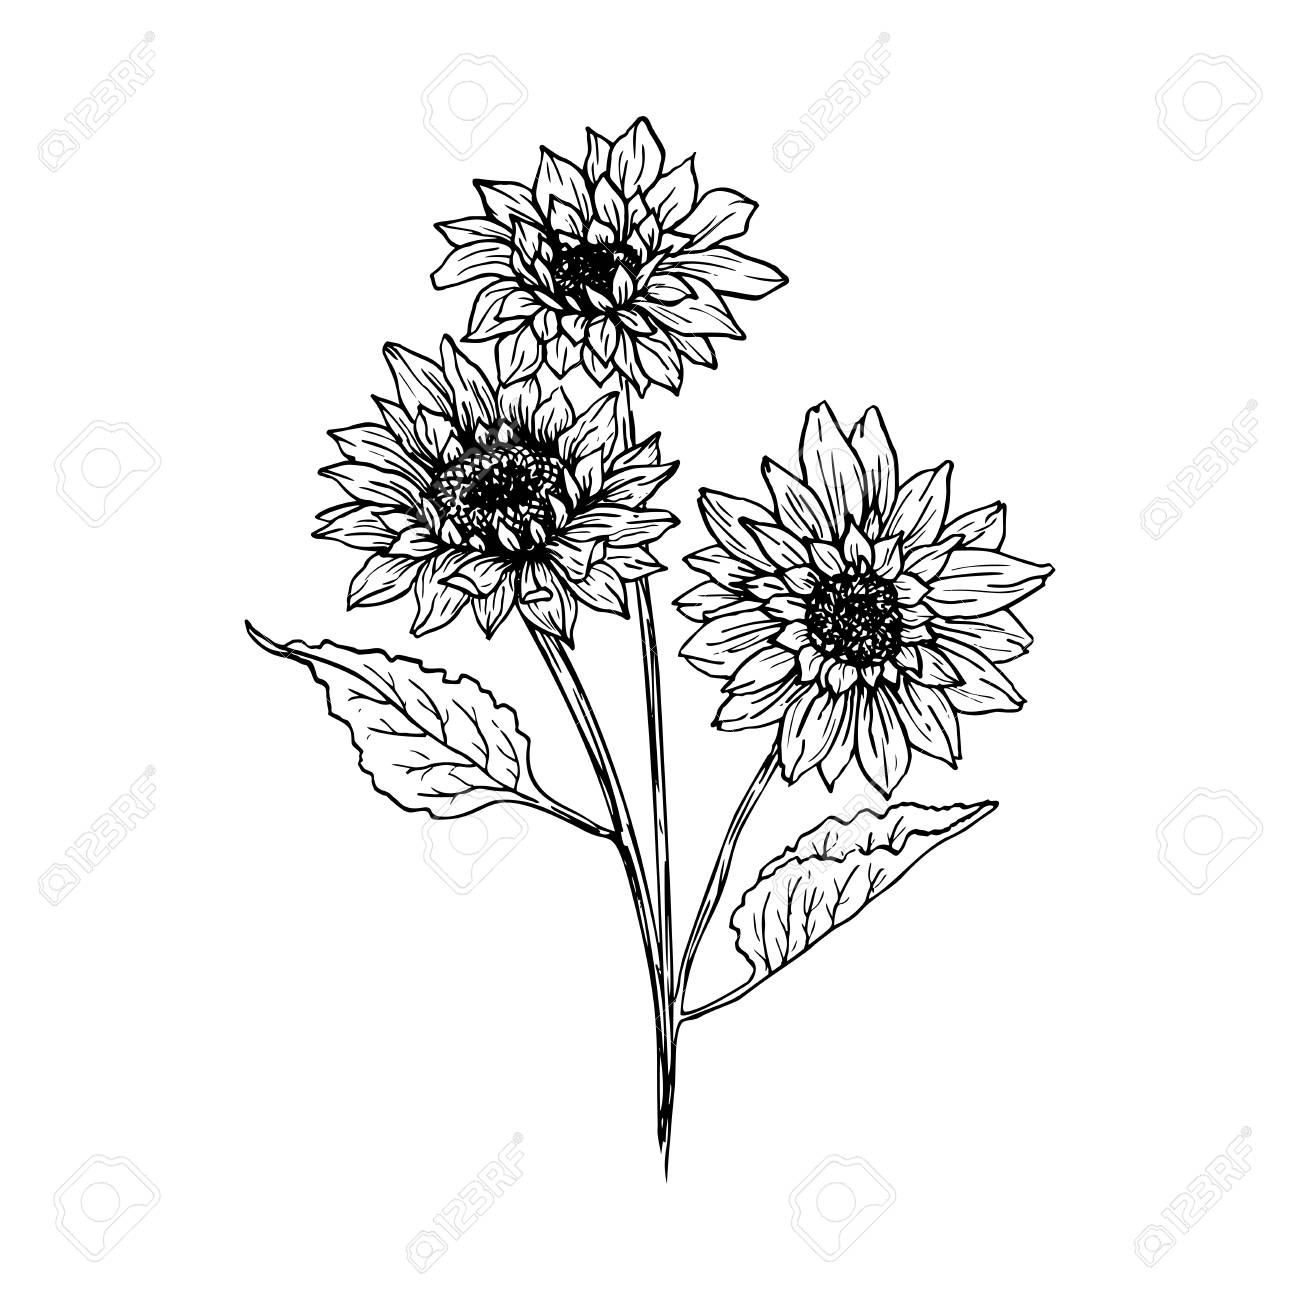 hight resolution of foto de archivo sunflower hand drawn vector illustration floral ink pen sketch black and white clipart realistic wildflower freehand drawing